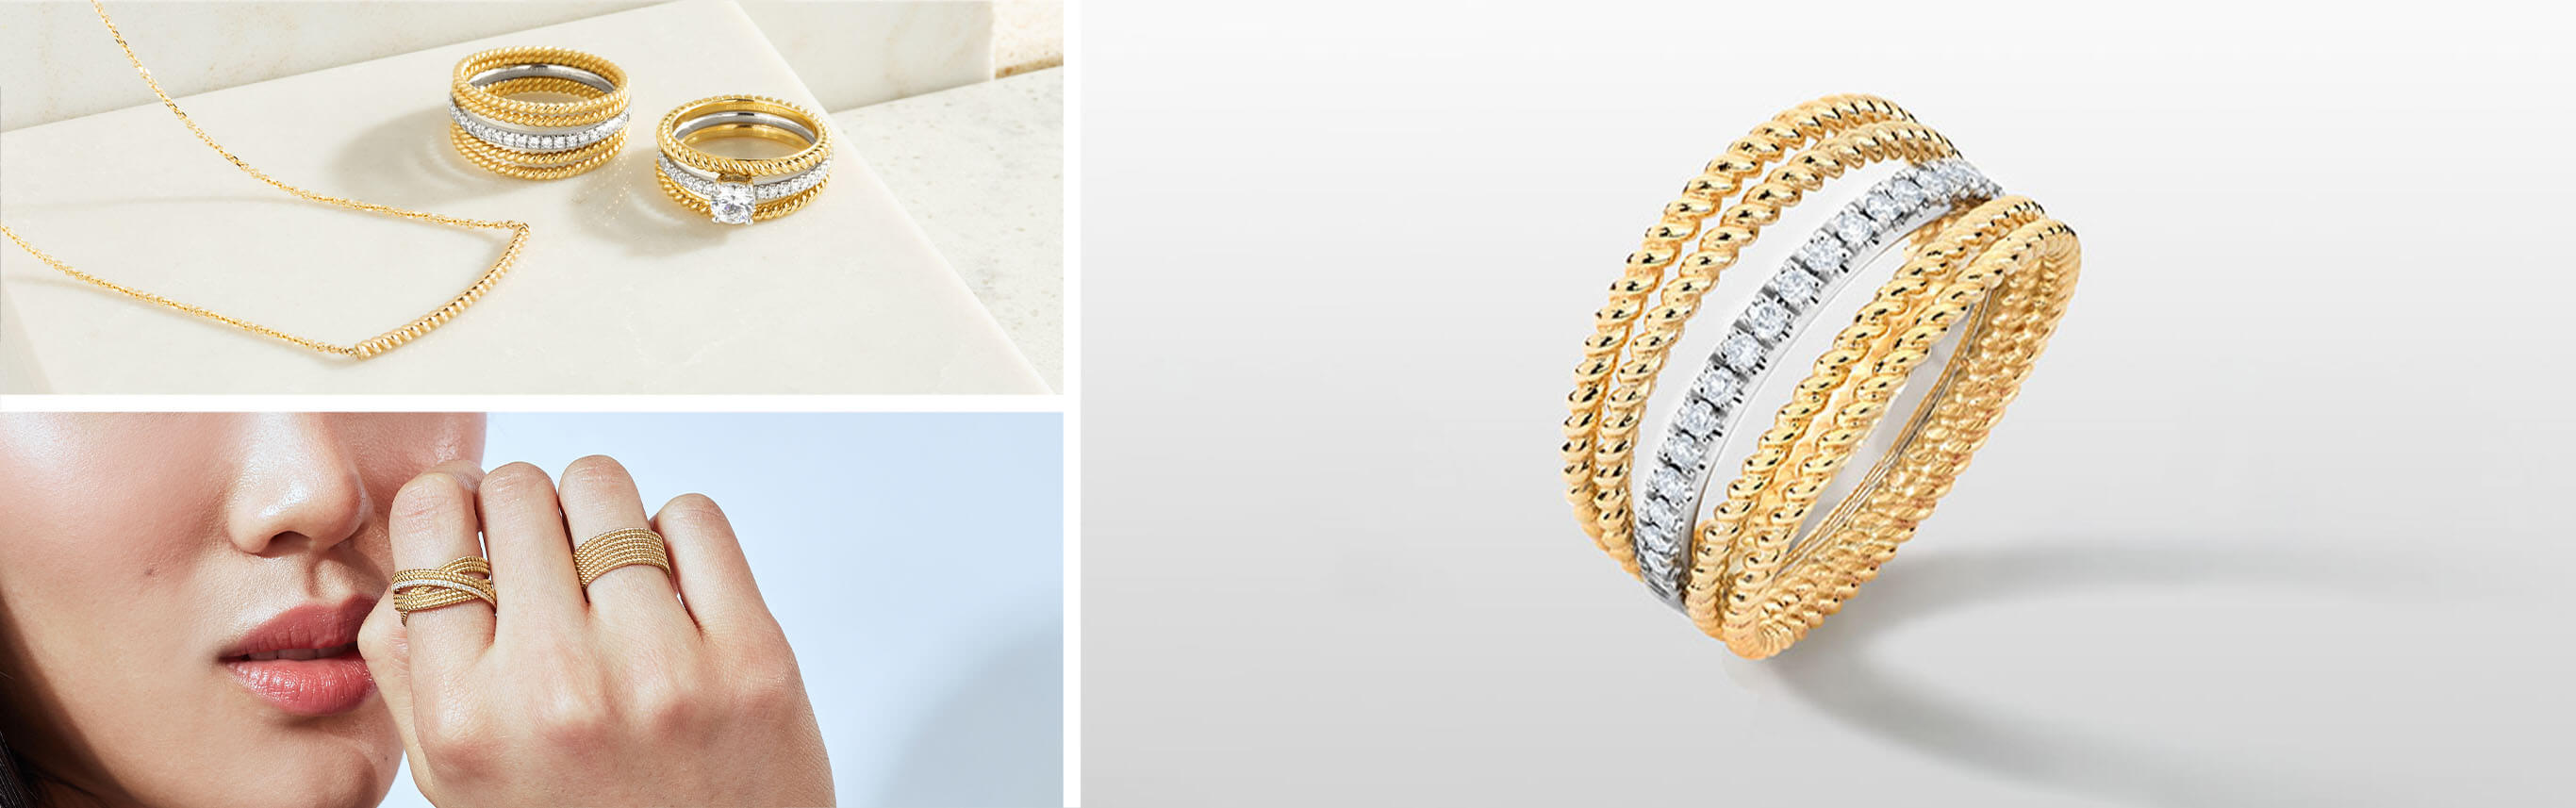 Jewellery Pieces from Ecksand's Tresses Collection